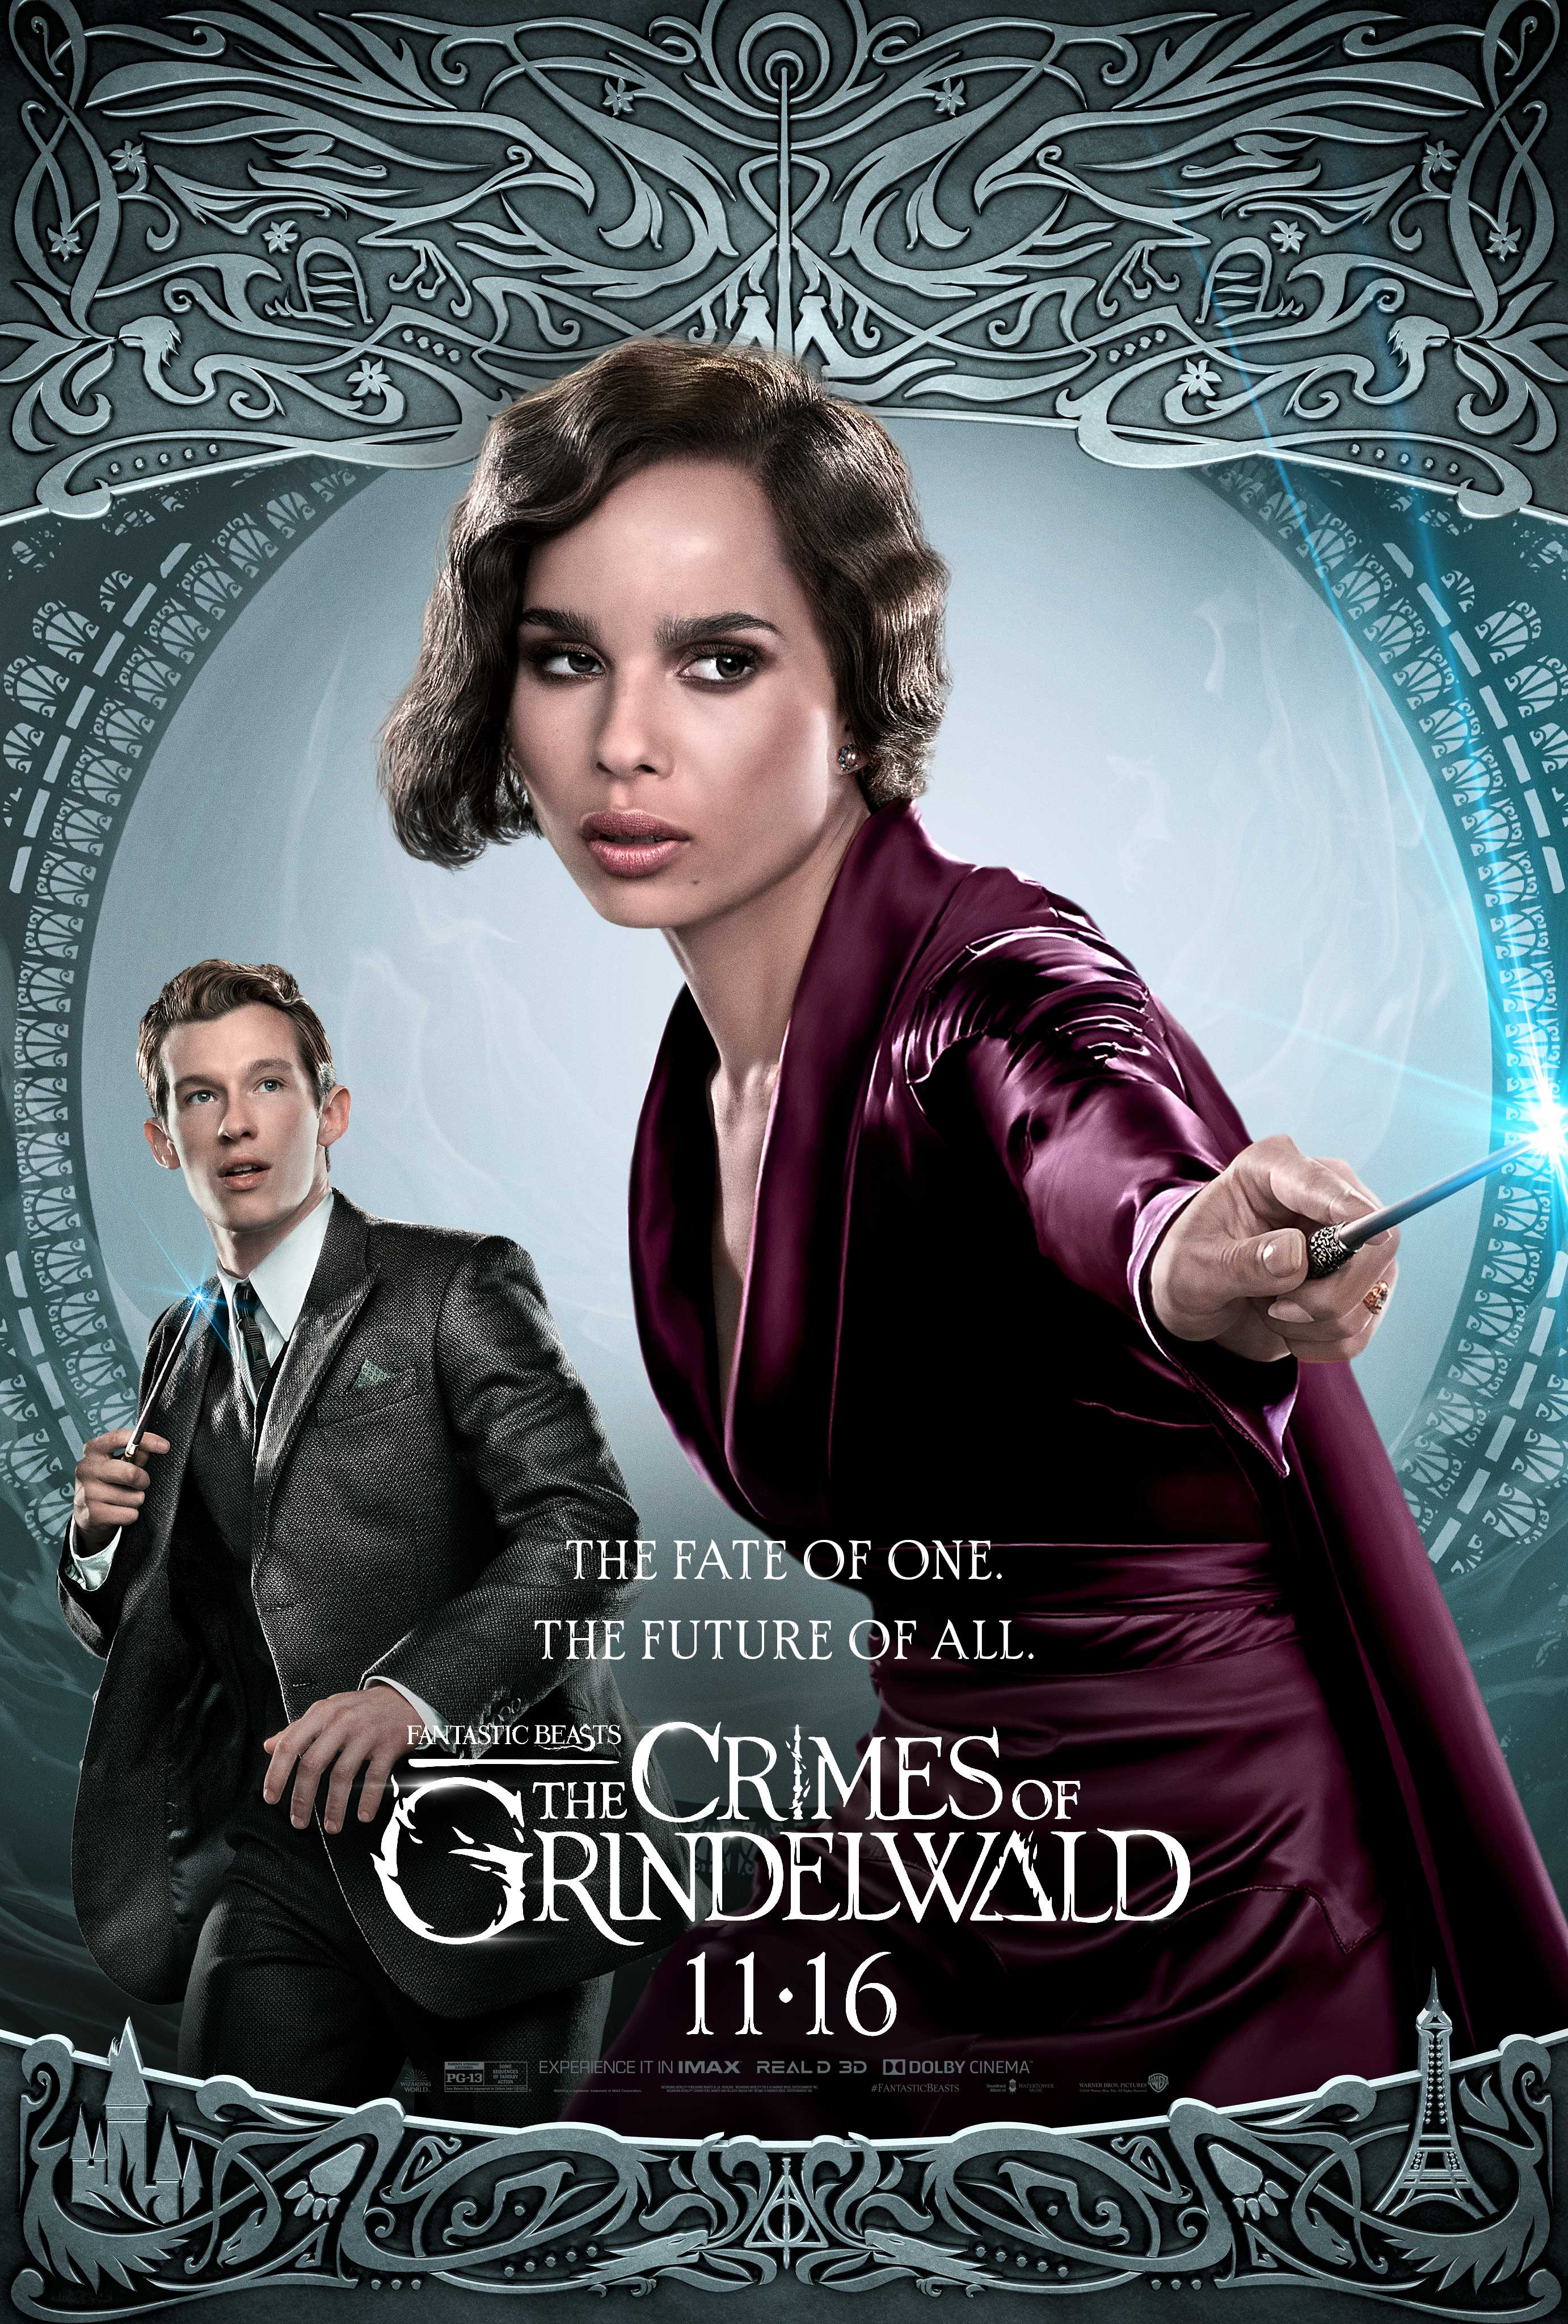 W127 Fantastic Beasts 2018 Comic The Crimes of Grindelwald Poster Silk Wall Art